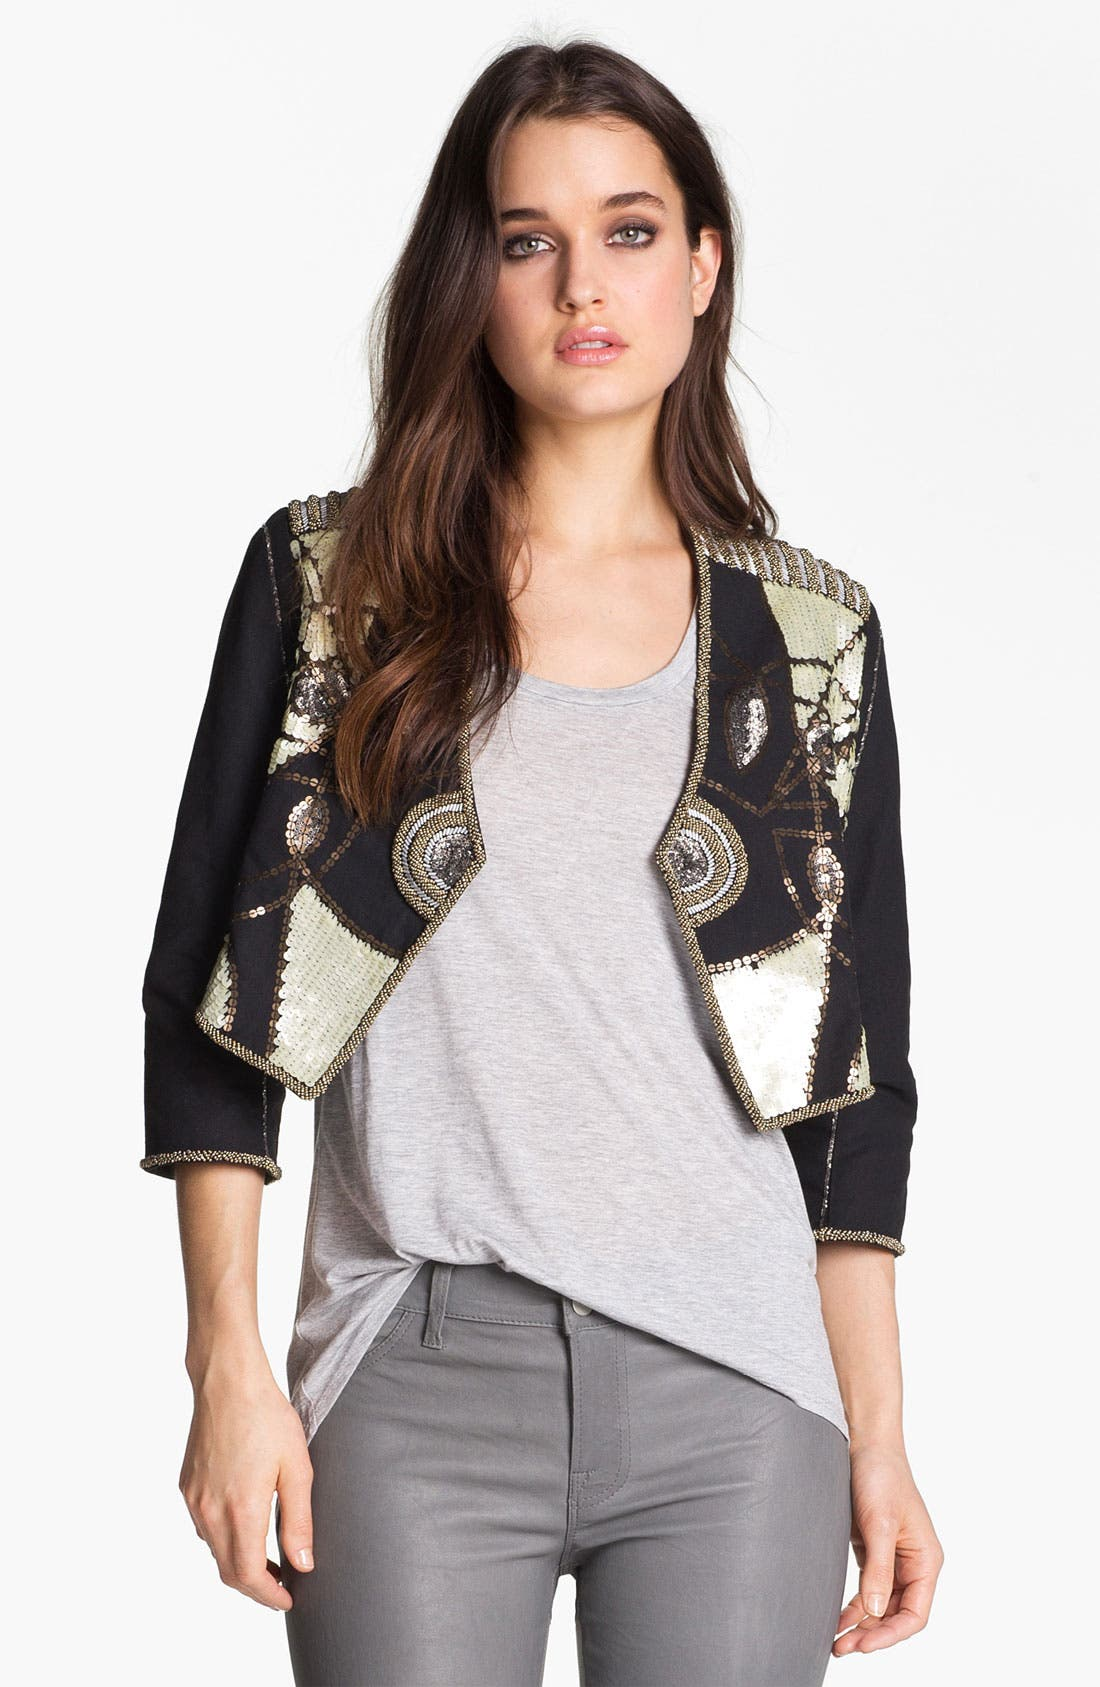 Alternate Image 1 Selected - ELEVENPARIS 'Dali' Embellished Jacket